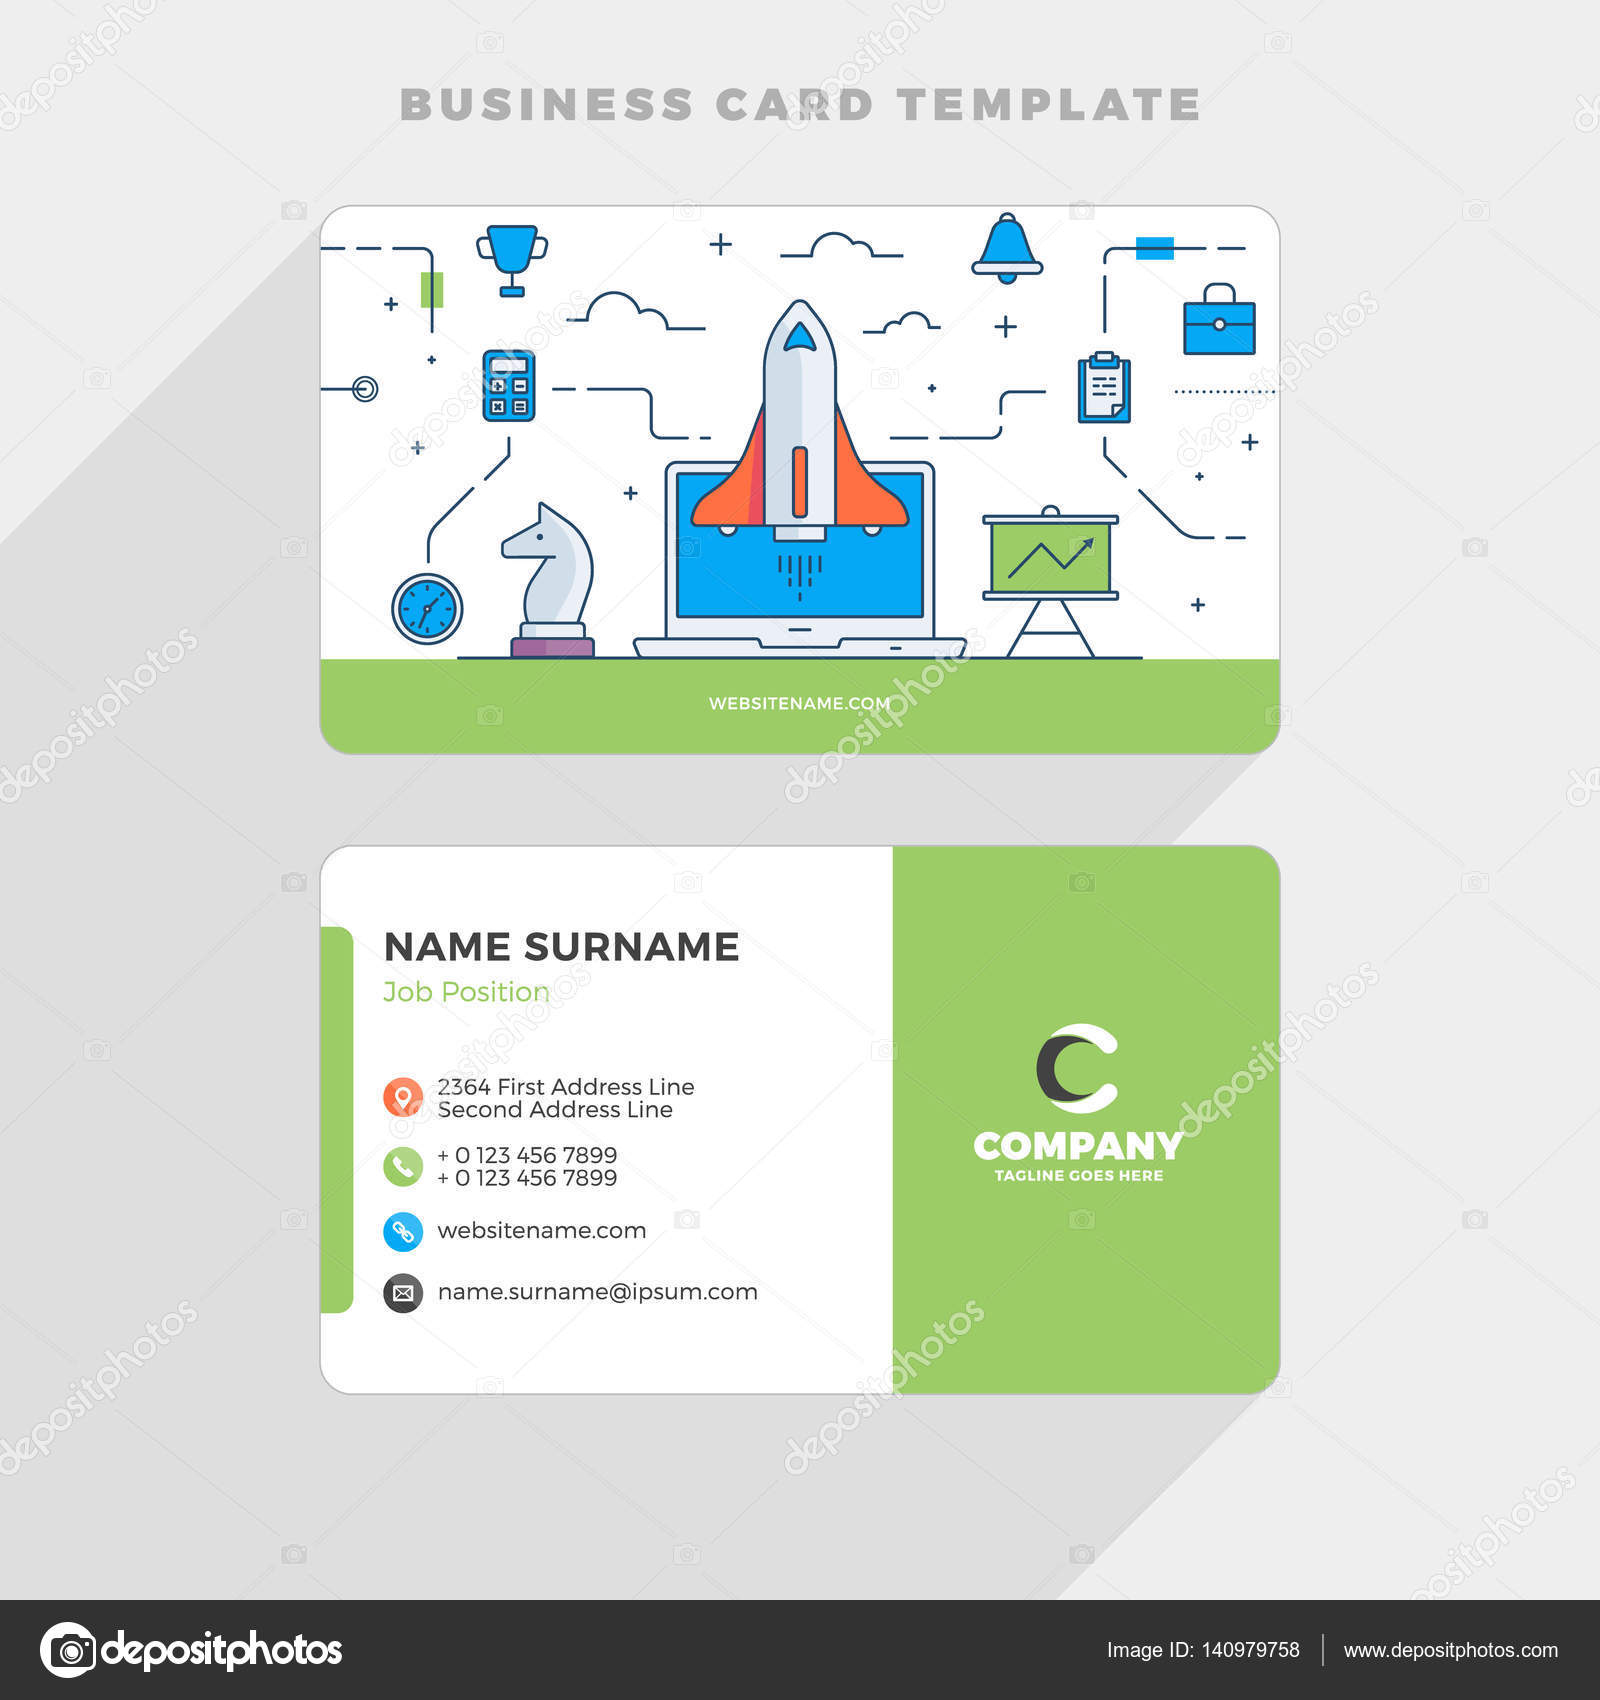 Creative Business Card Template with Flat Line Illustration. Startup ...